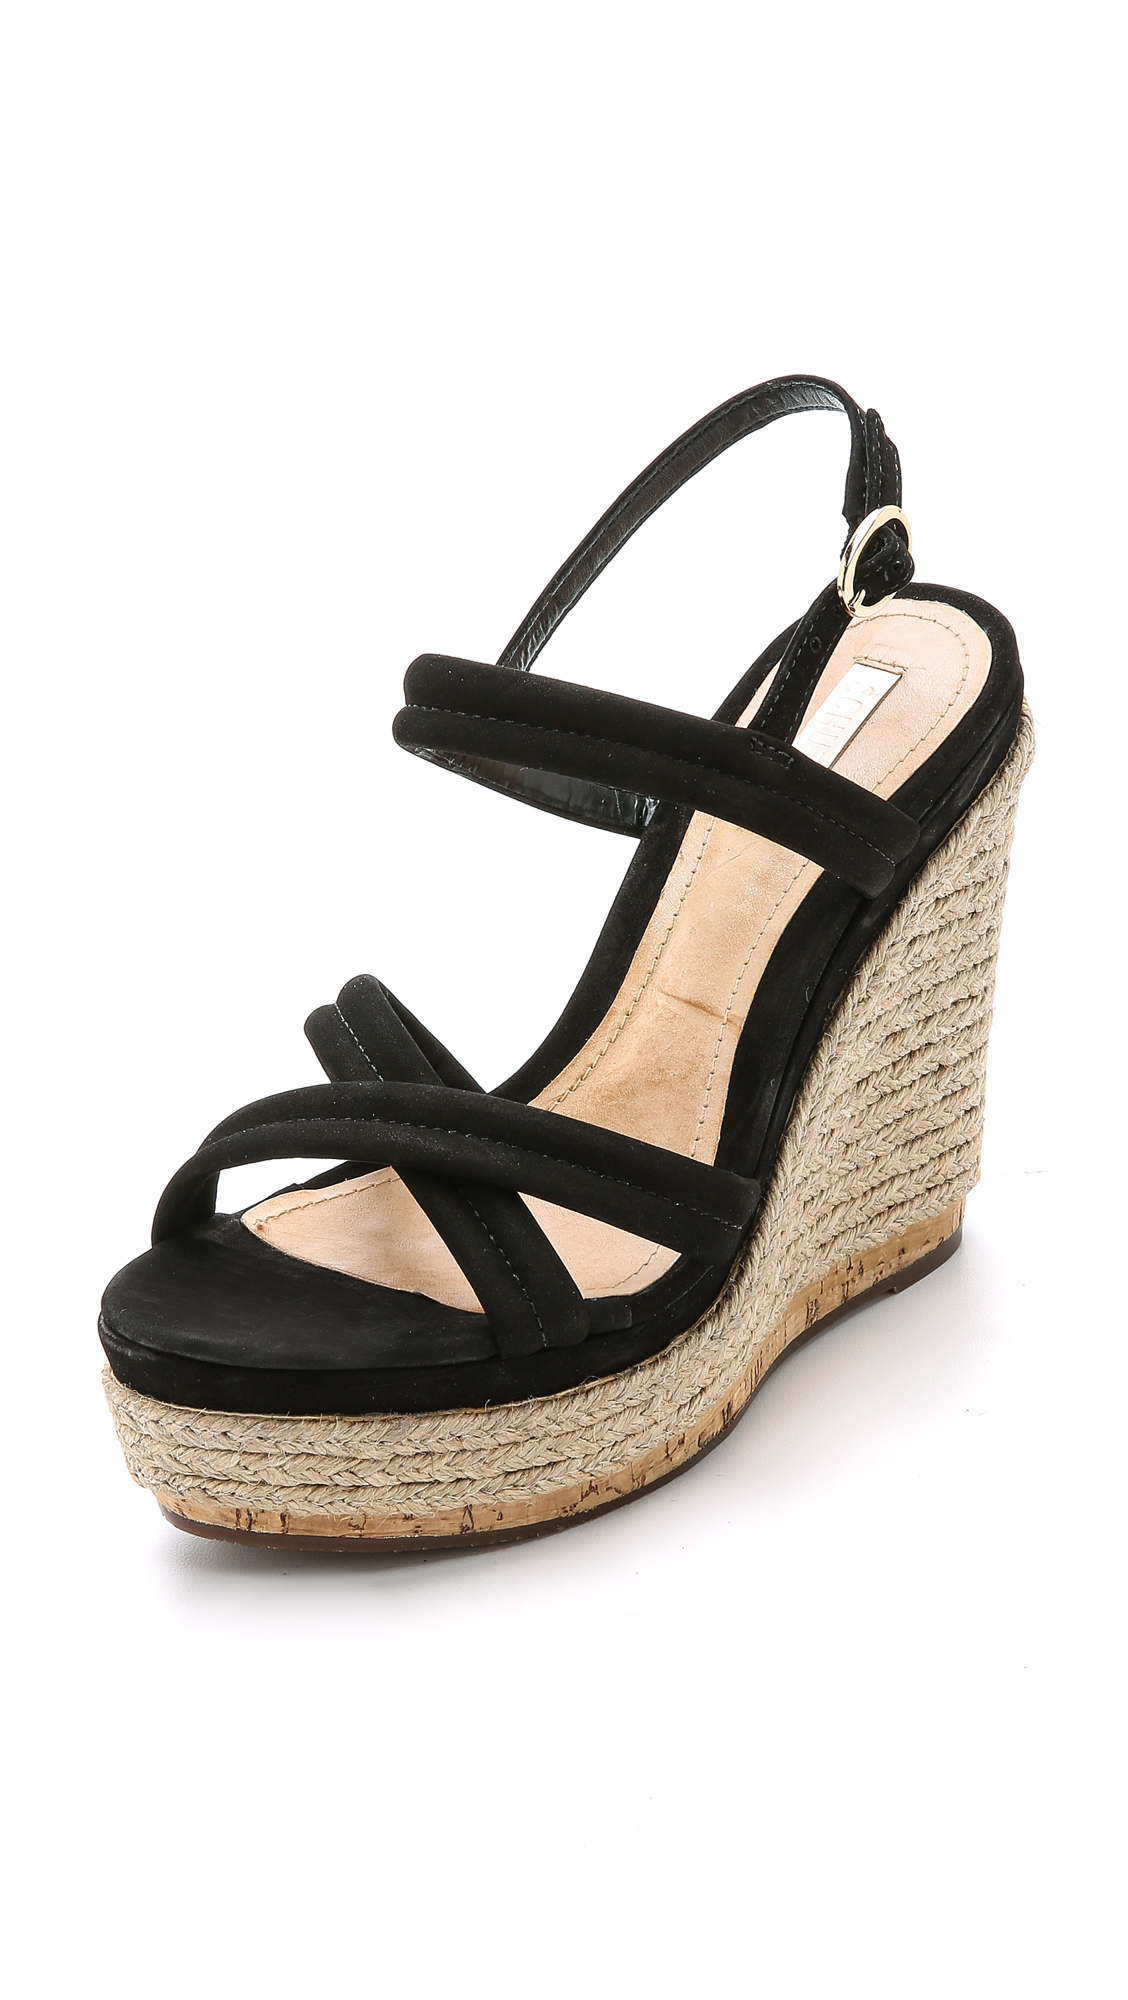 e96ff0daea Schutz Evy Espadrille Wedge Sandals - Black in Black - Lyst